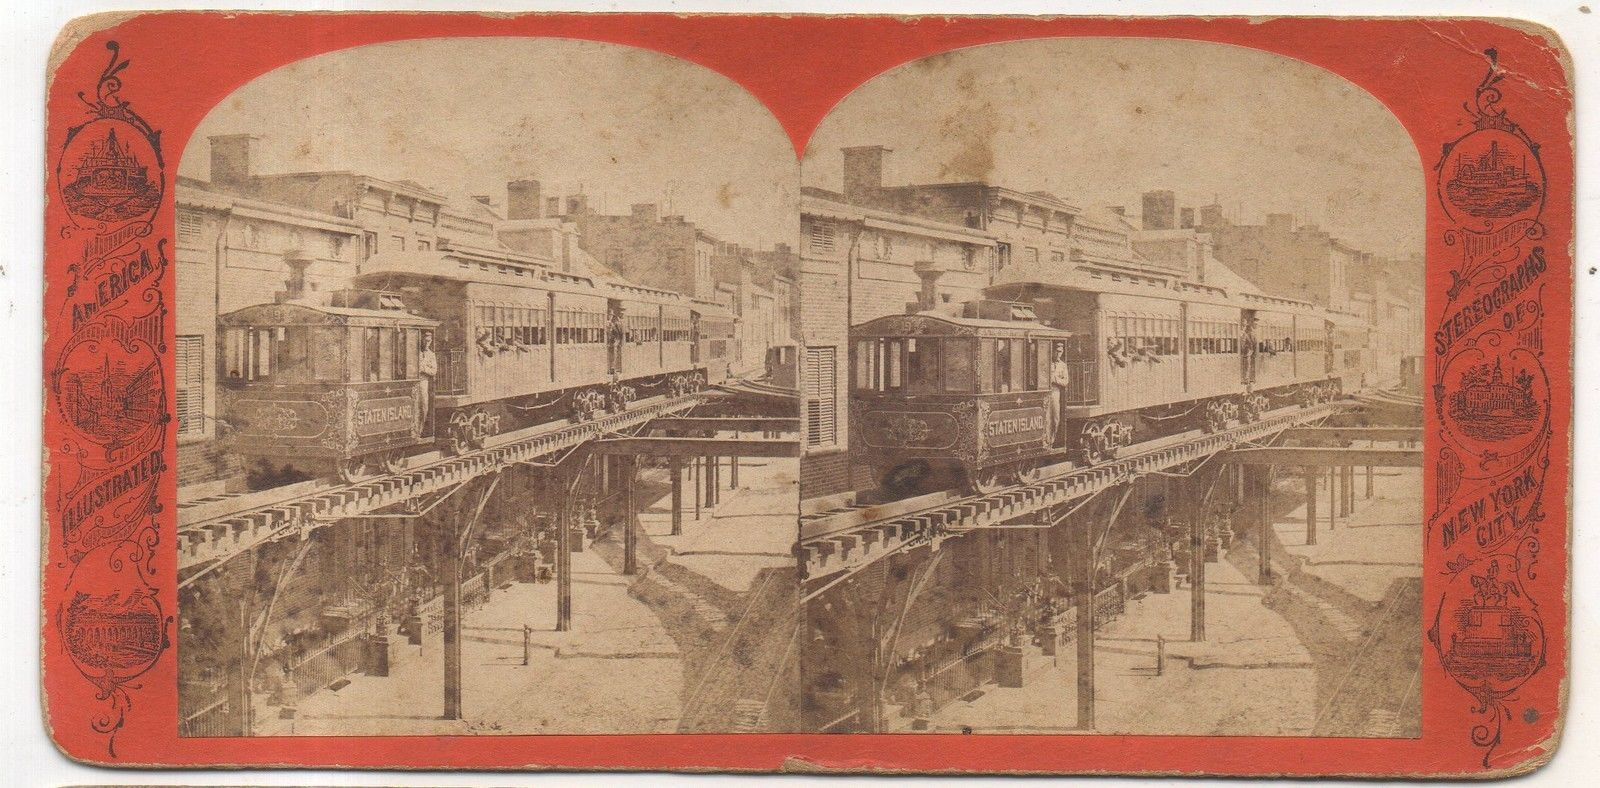 NEW YORK CITY Elevated Railroad, Staten Island Line, Antique Stereoview Card